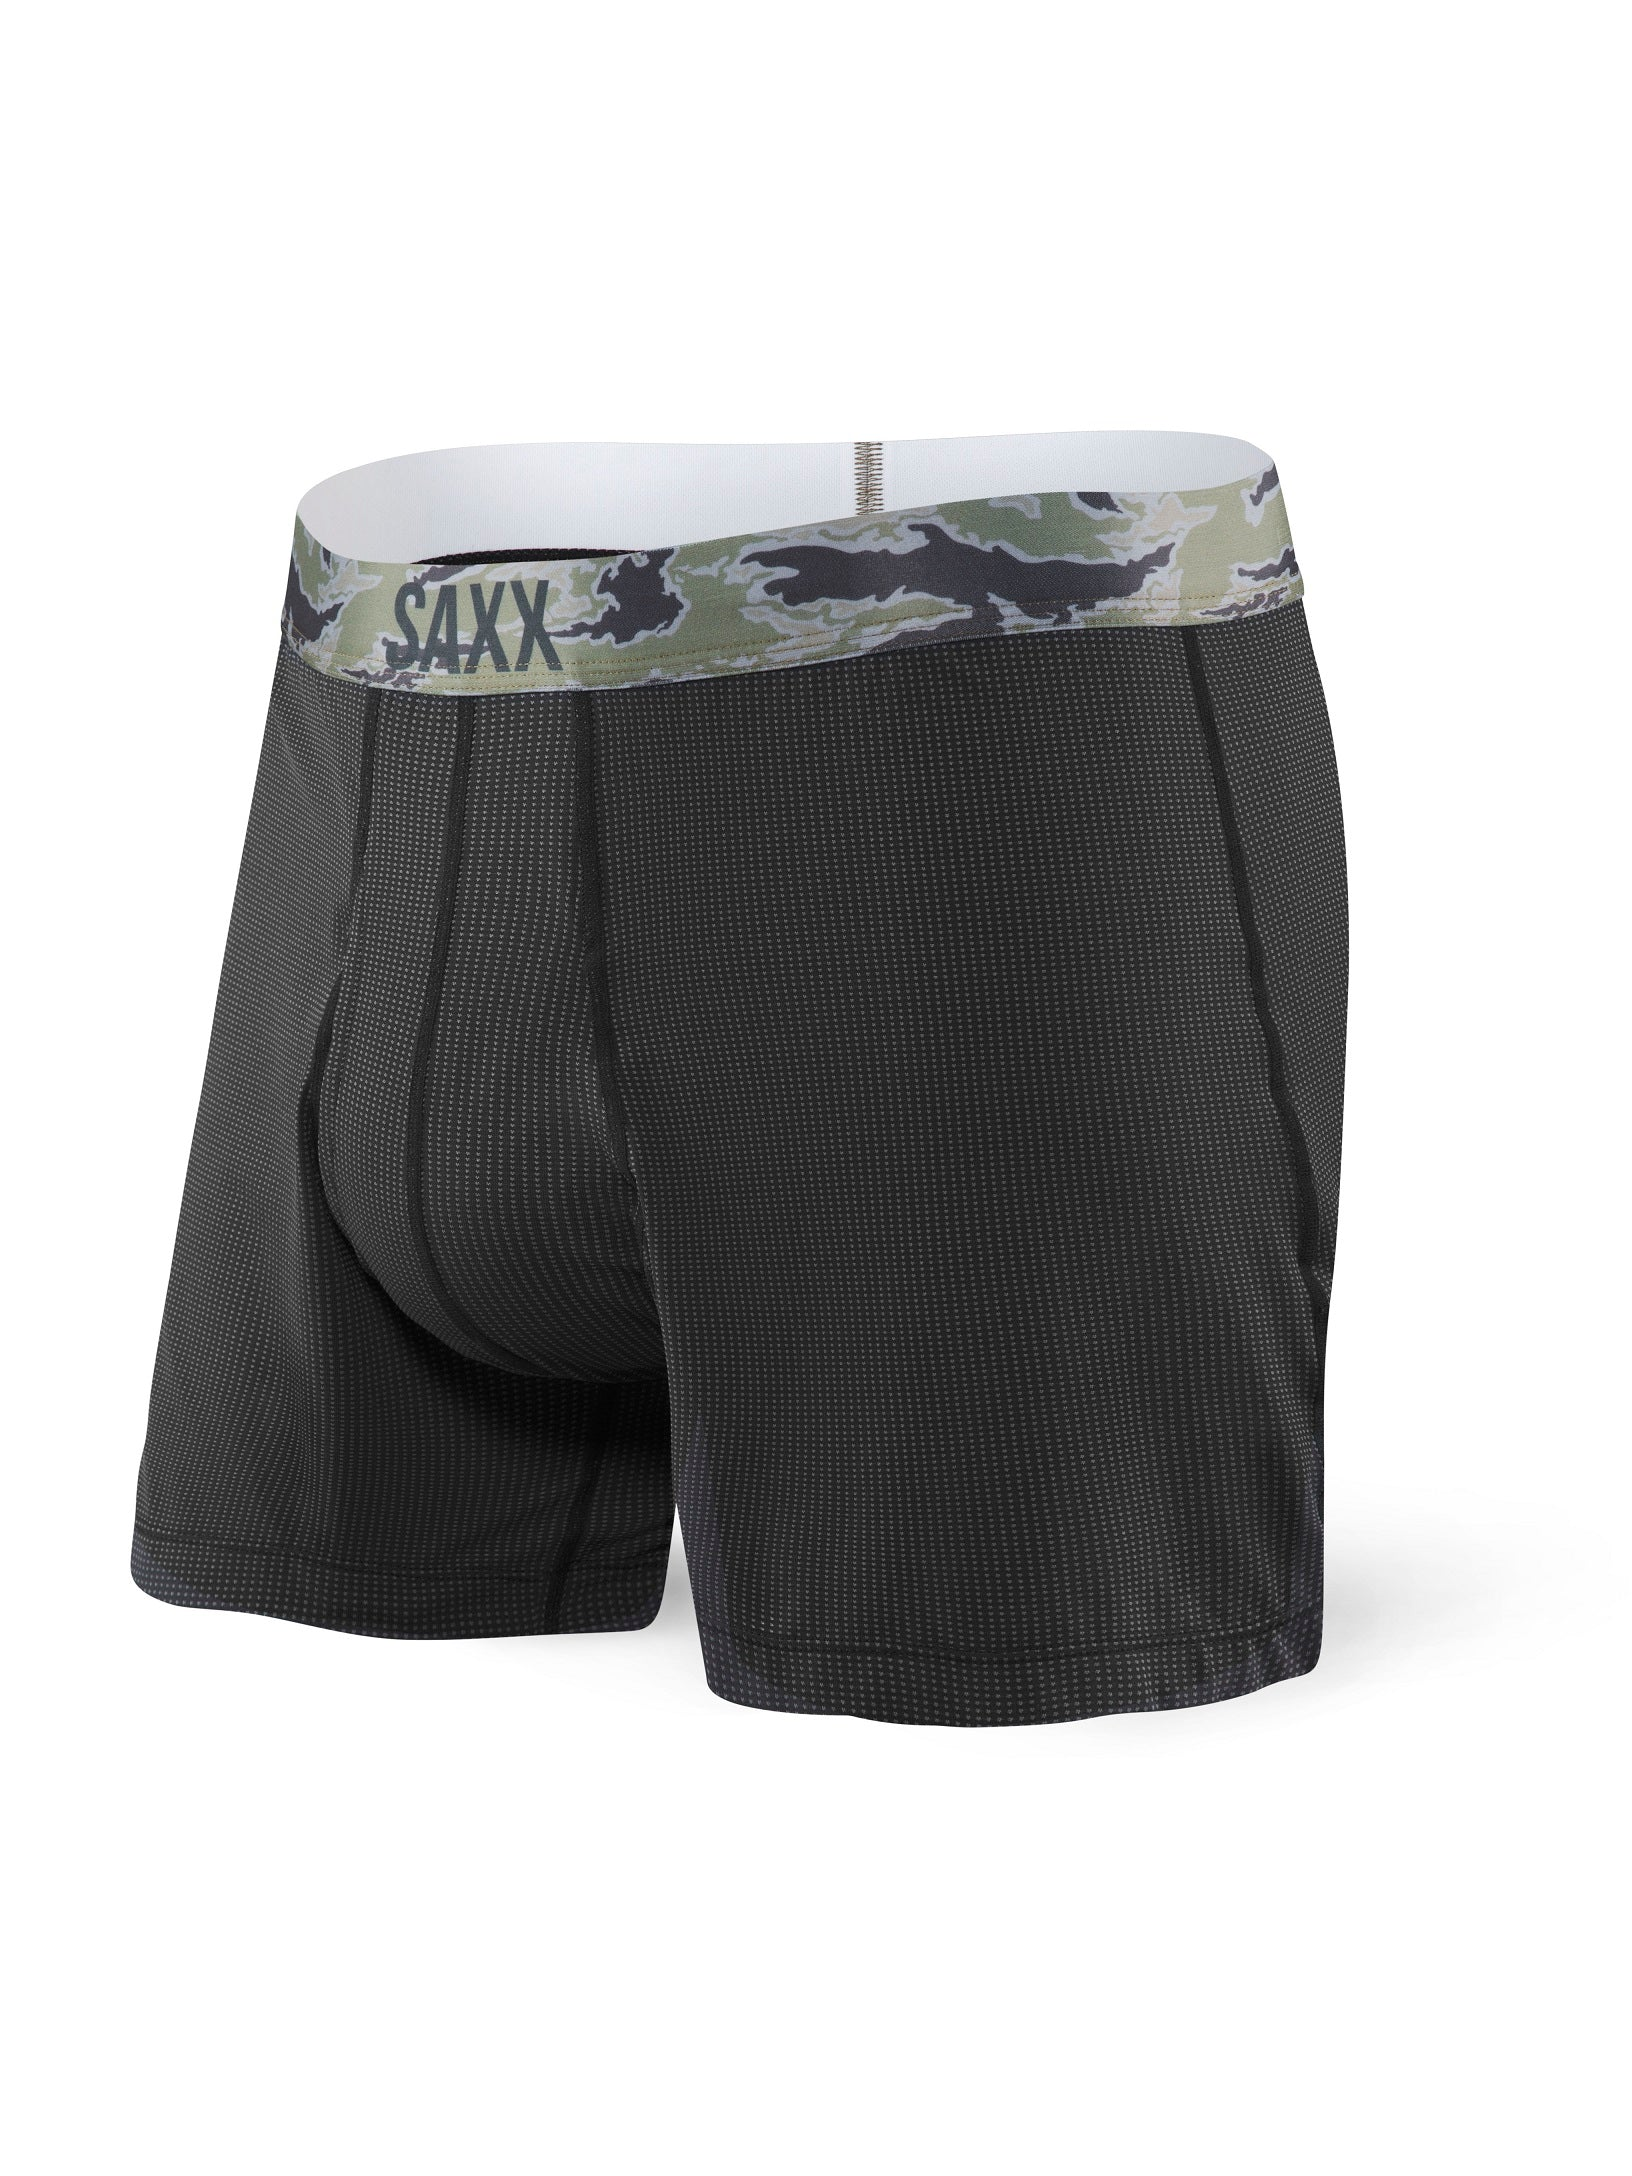 Saxx Quest Loose Cannon Boxer